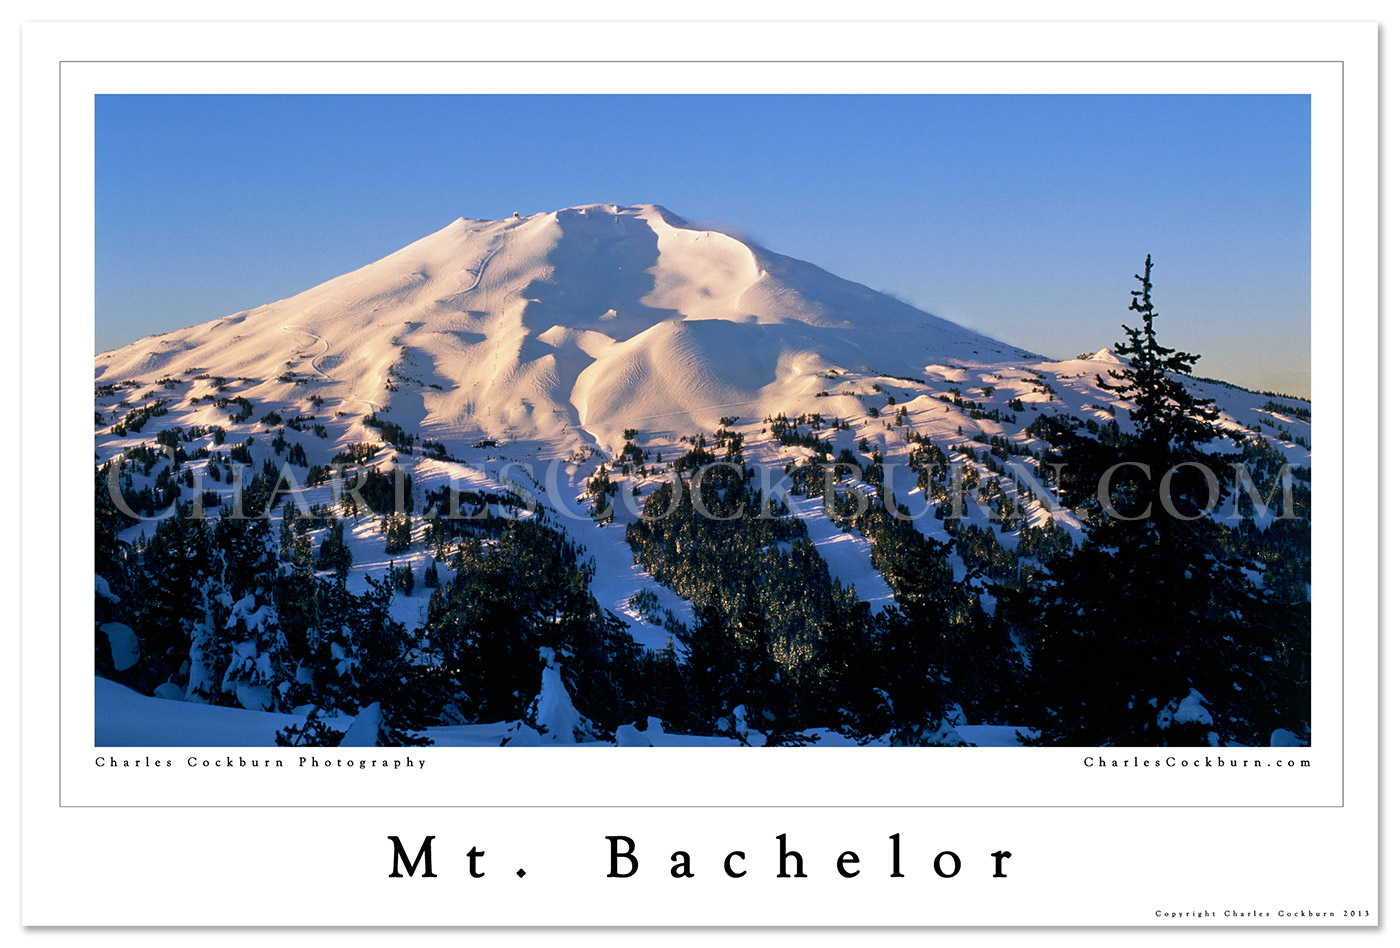 Mt. Bachelor Poster at CharlesCockburn.com